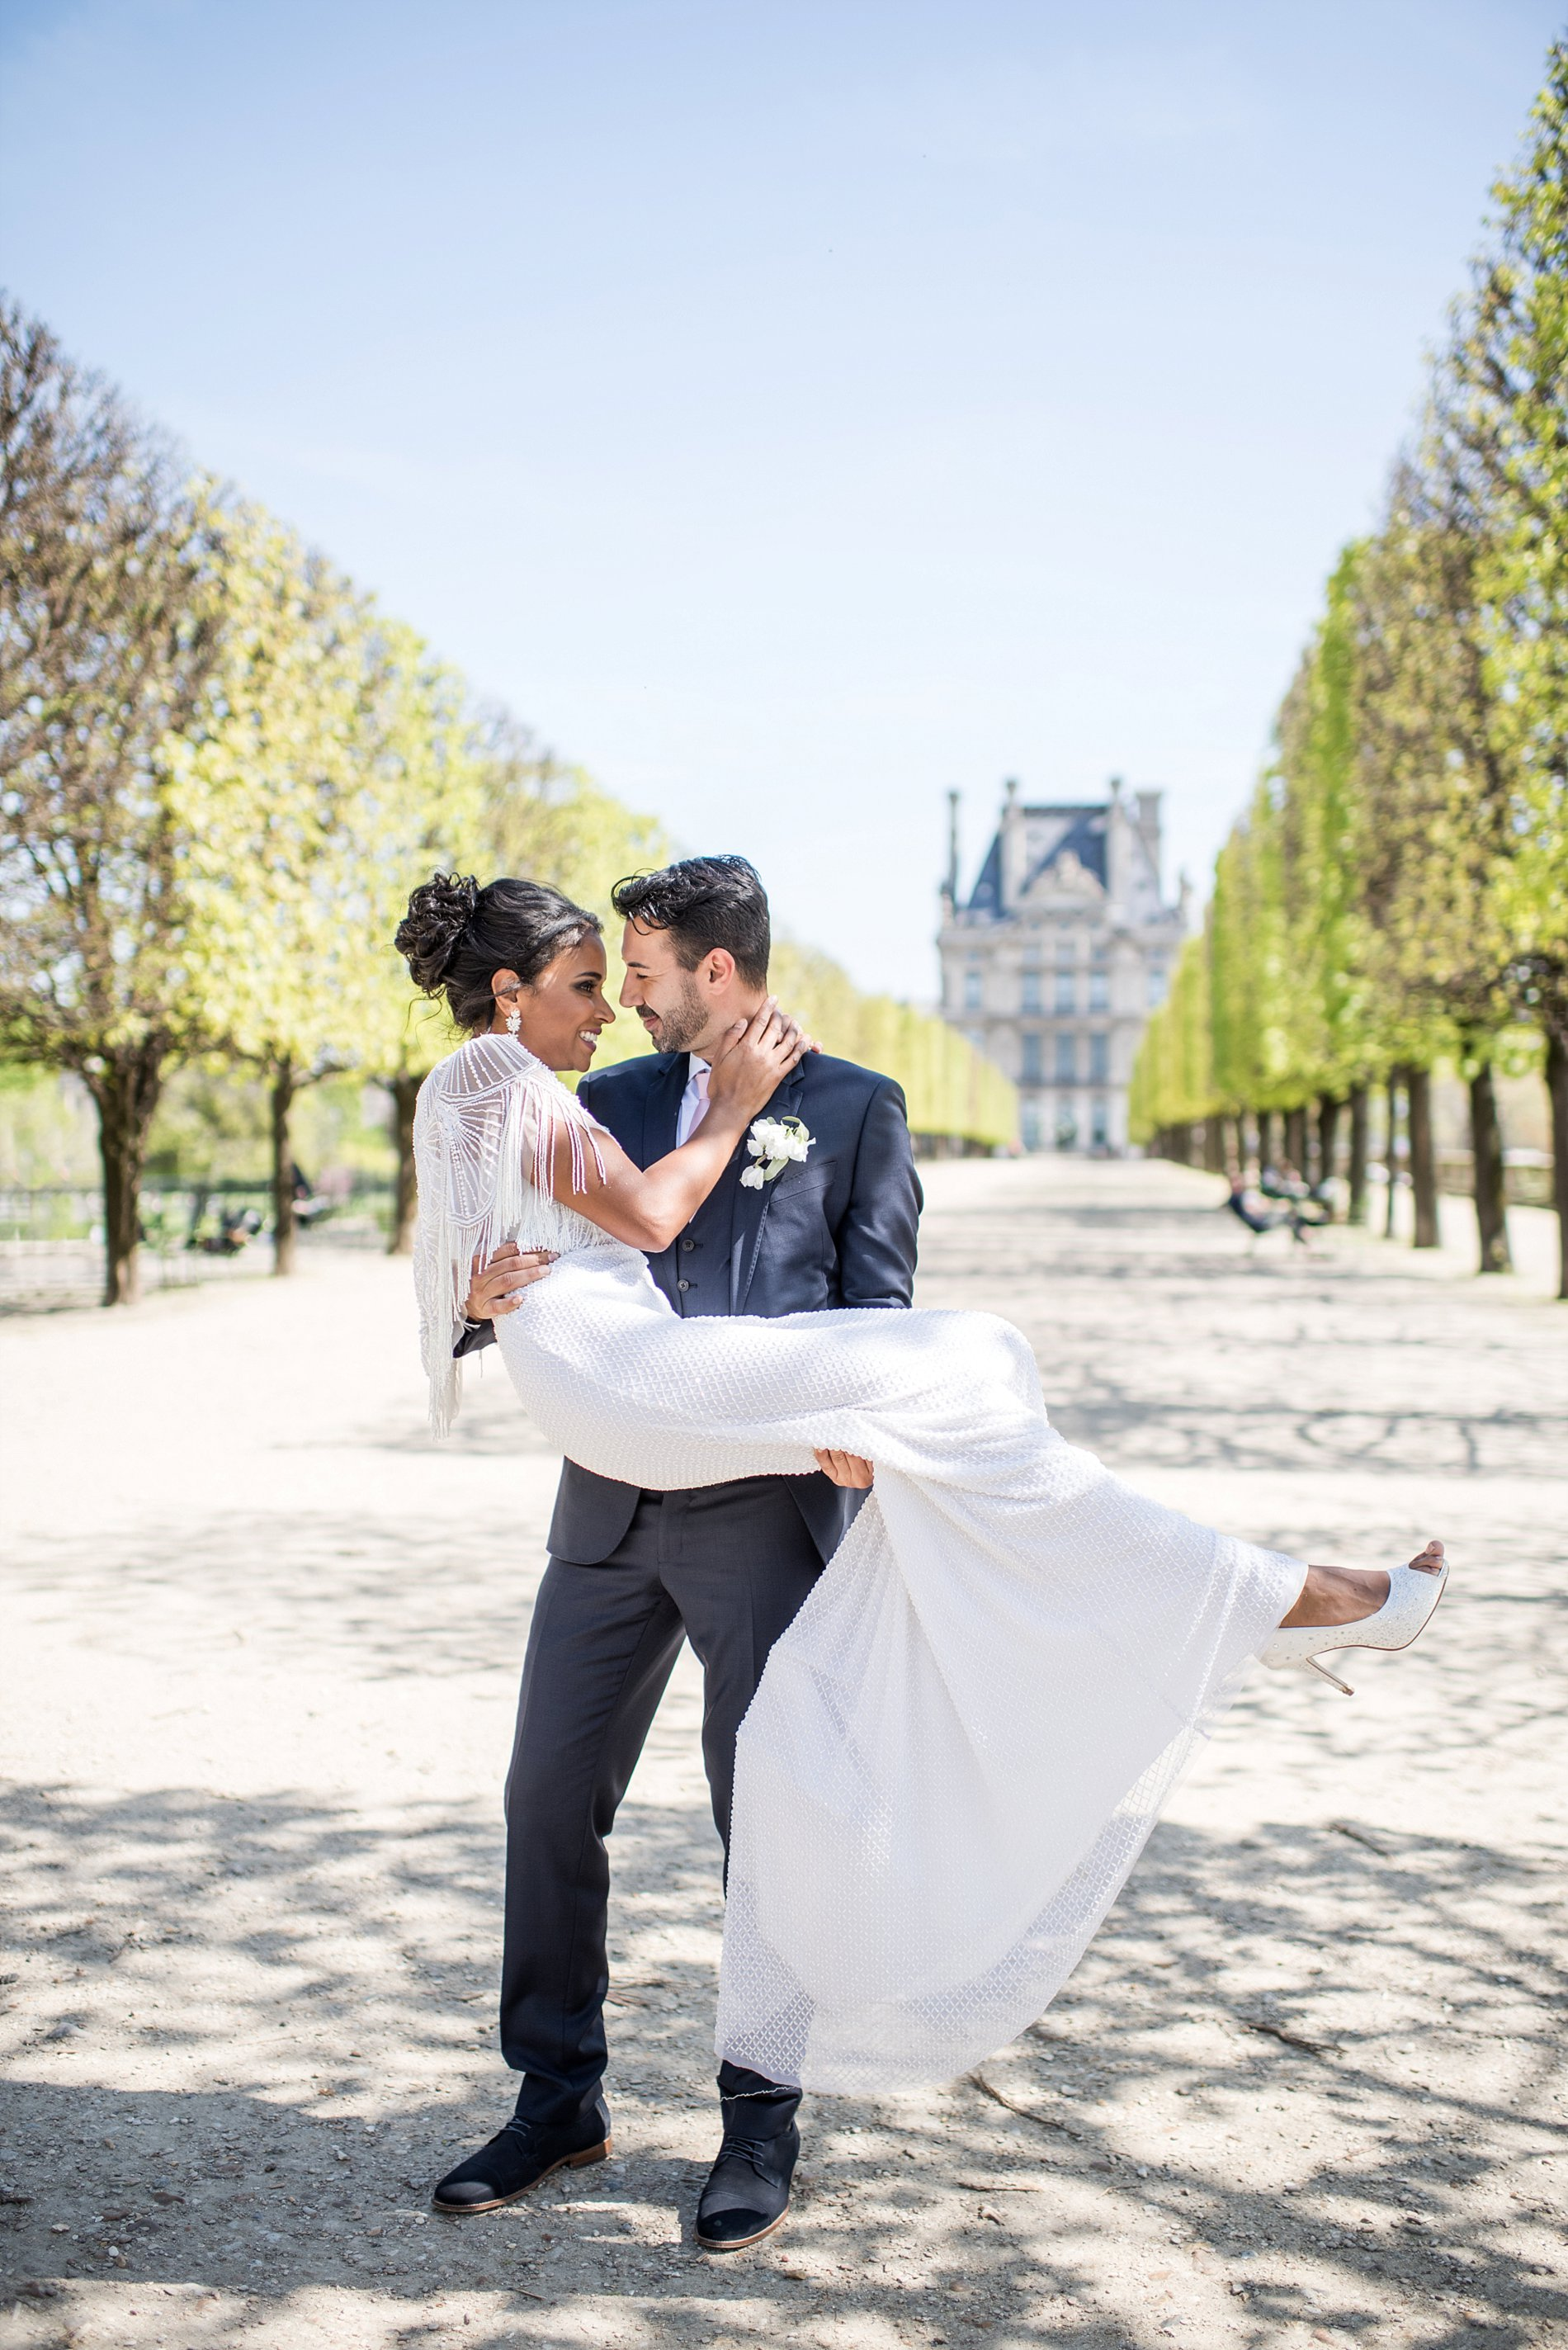 Paris elopement wedding photography by Jane Beadnell Photography-146